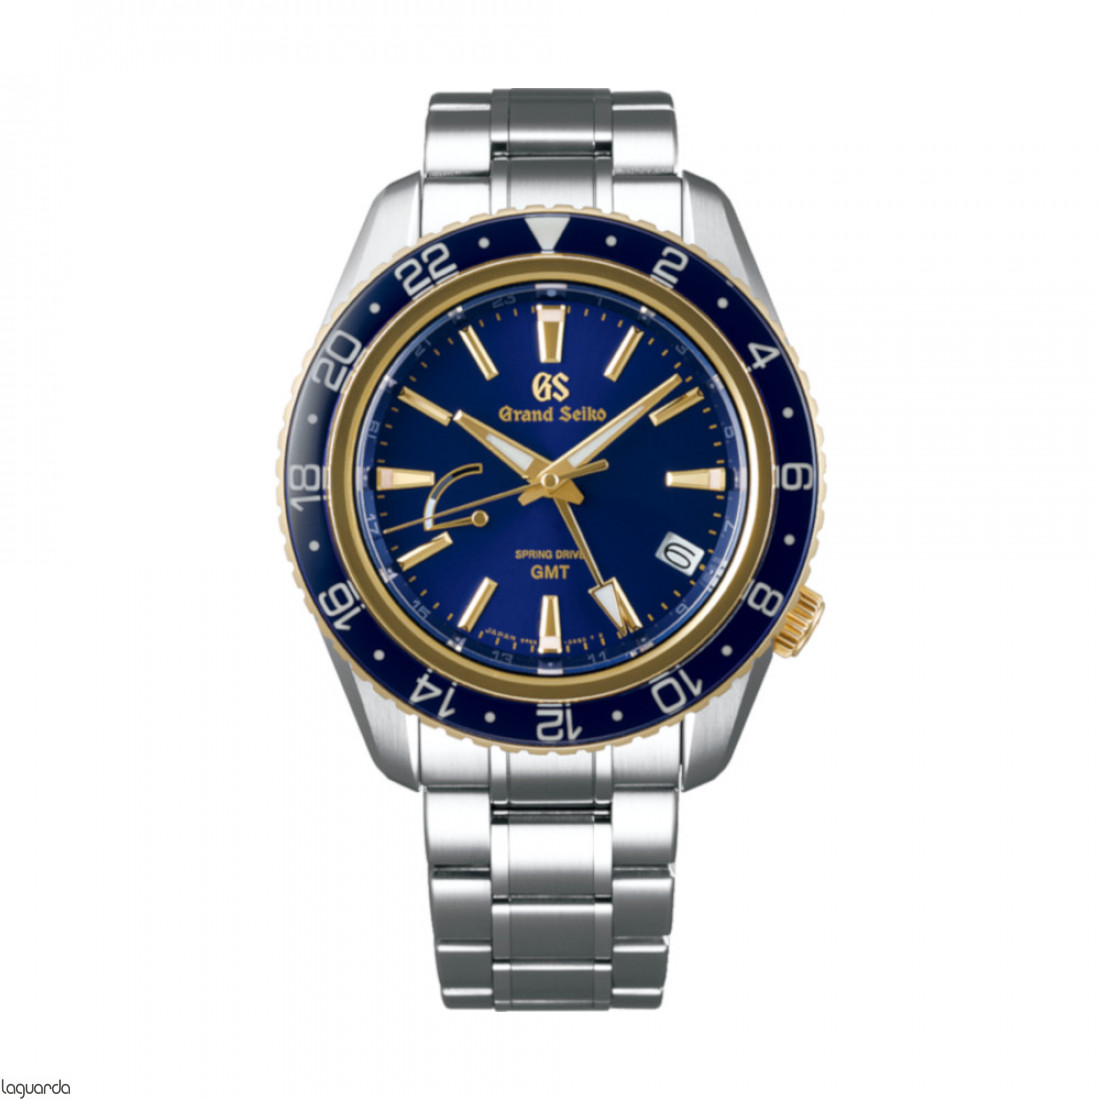 SBGE248 | Reloj Grand Seiko SBGE248 Spring Drive GMT Limited Edition